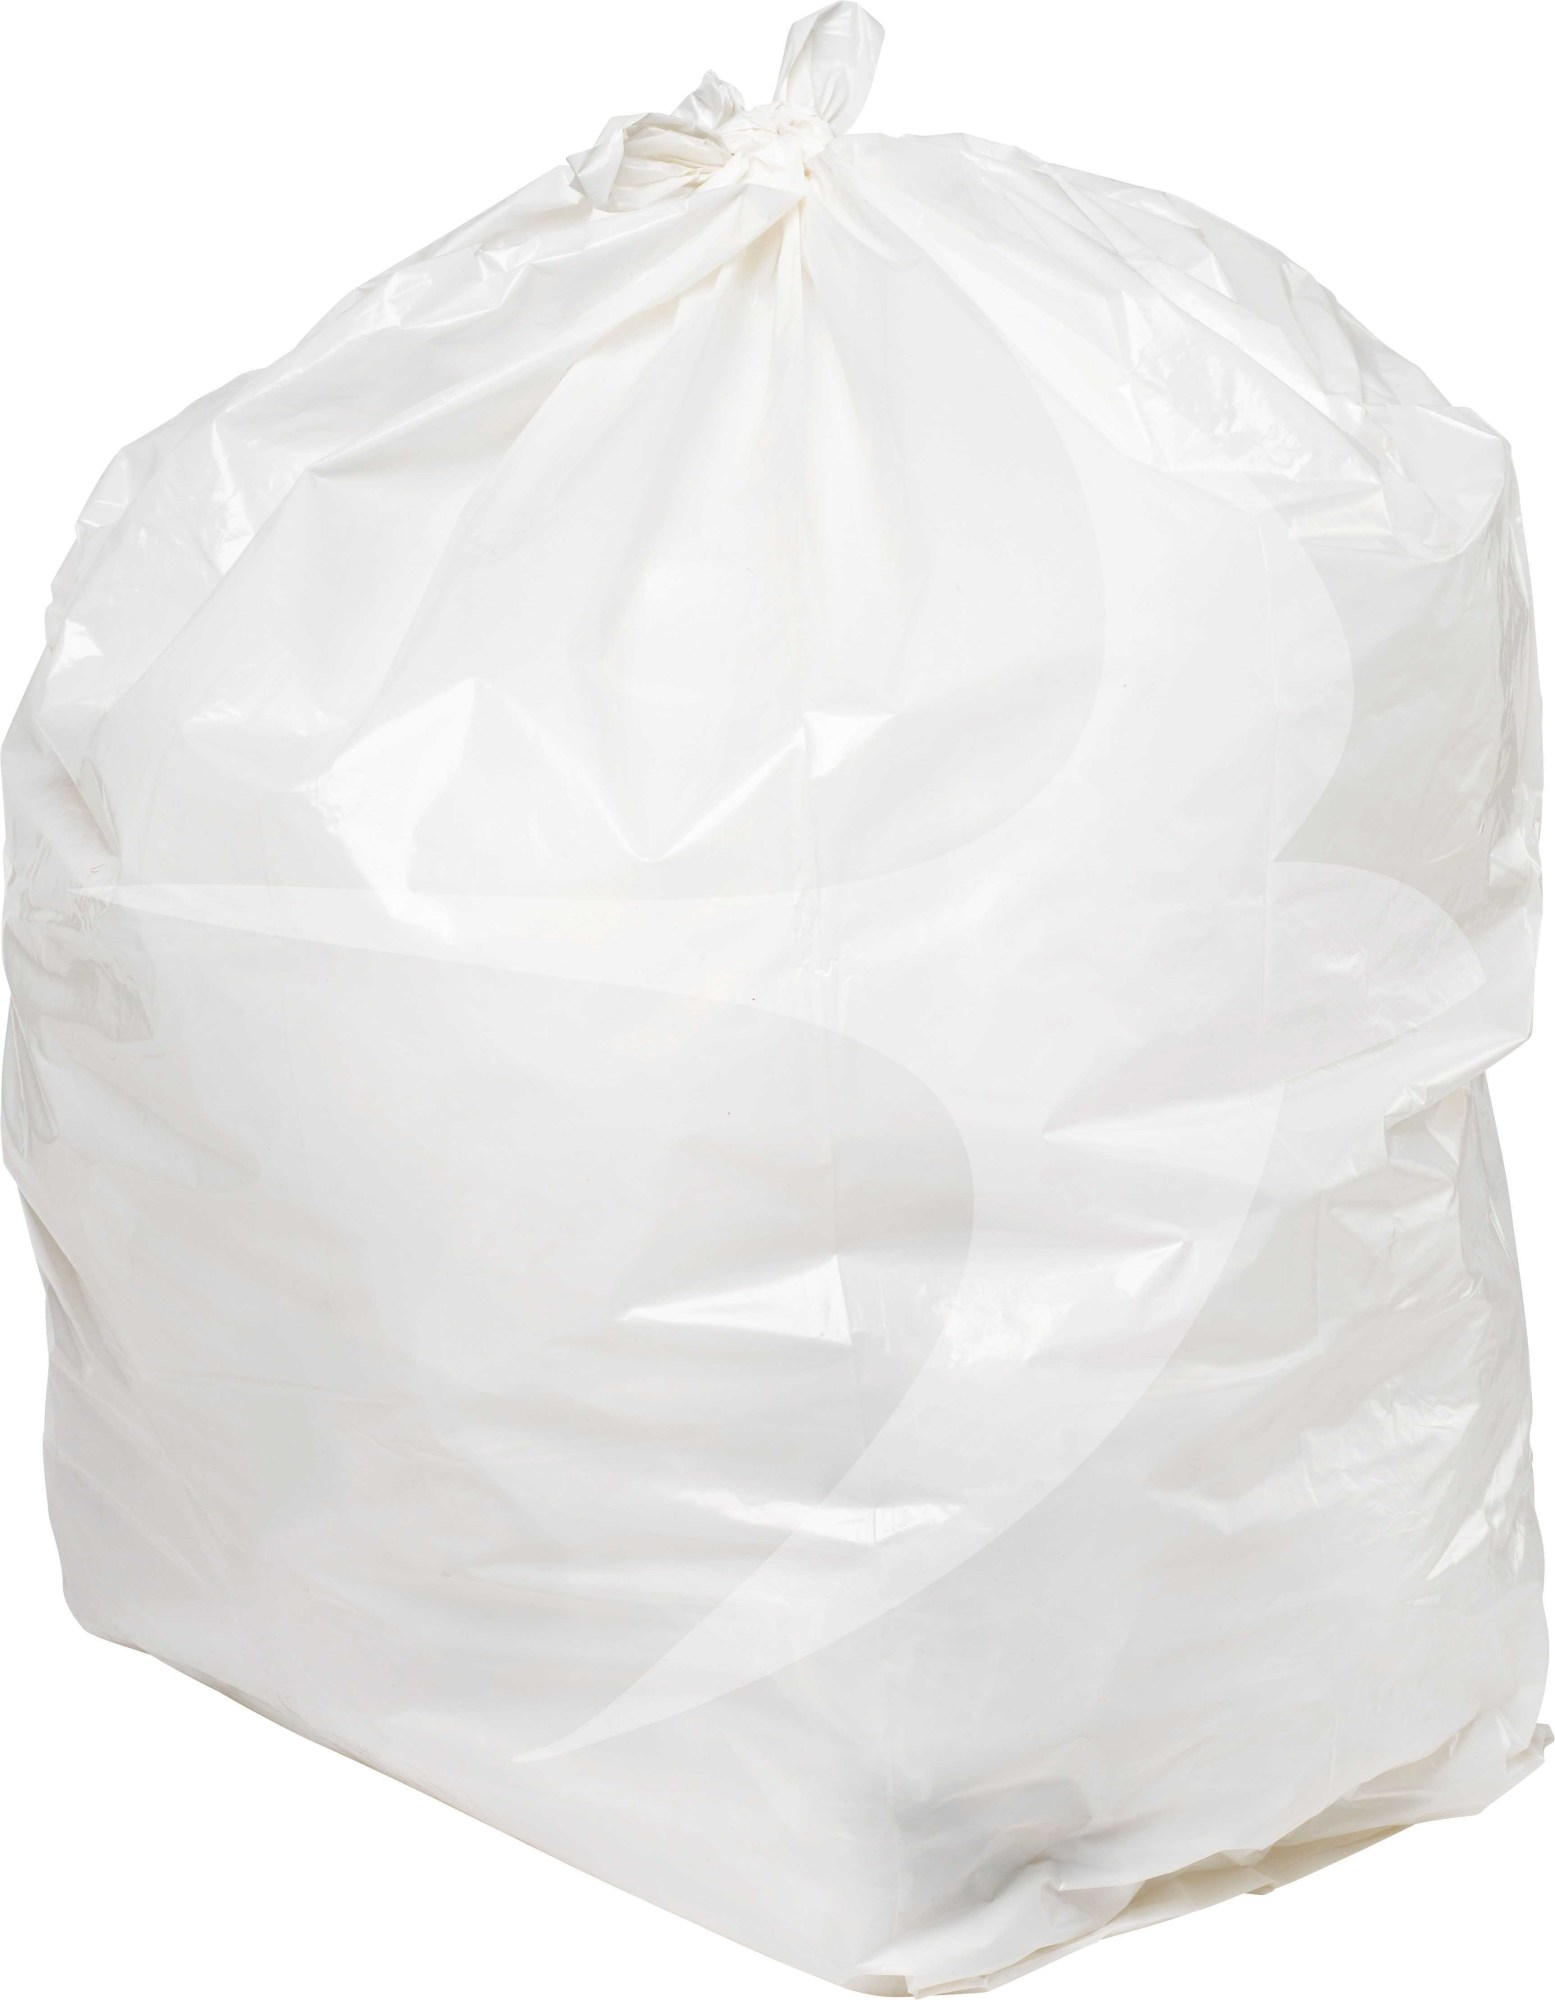 PRO-SAC 450/732 x 990mm Heavy Duty Clear Refuse Sacks